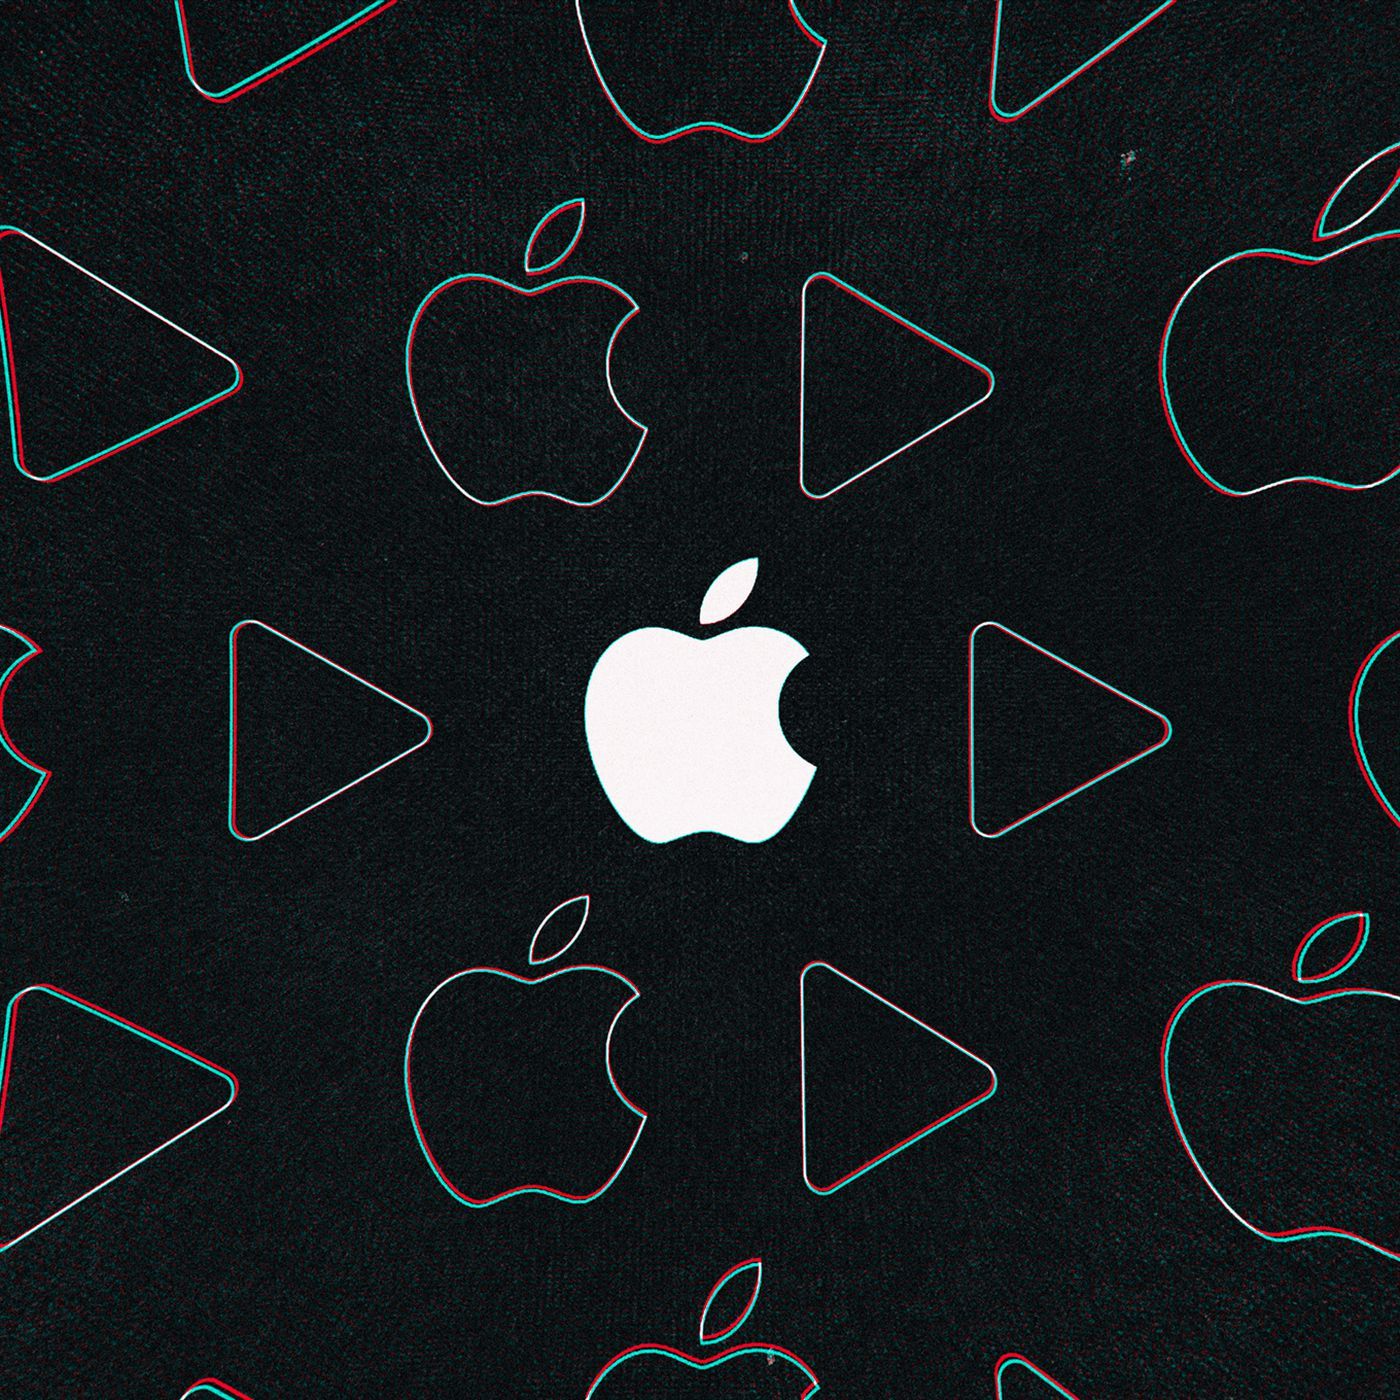 theverge.com - Andrew Liptak - Apple's original TV shows reportedly won't be free - plus $9.99 for HBO, Starz, Showtime